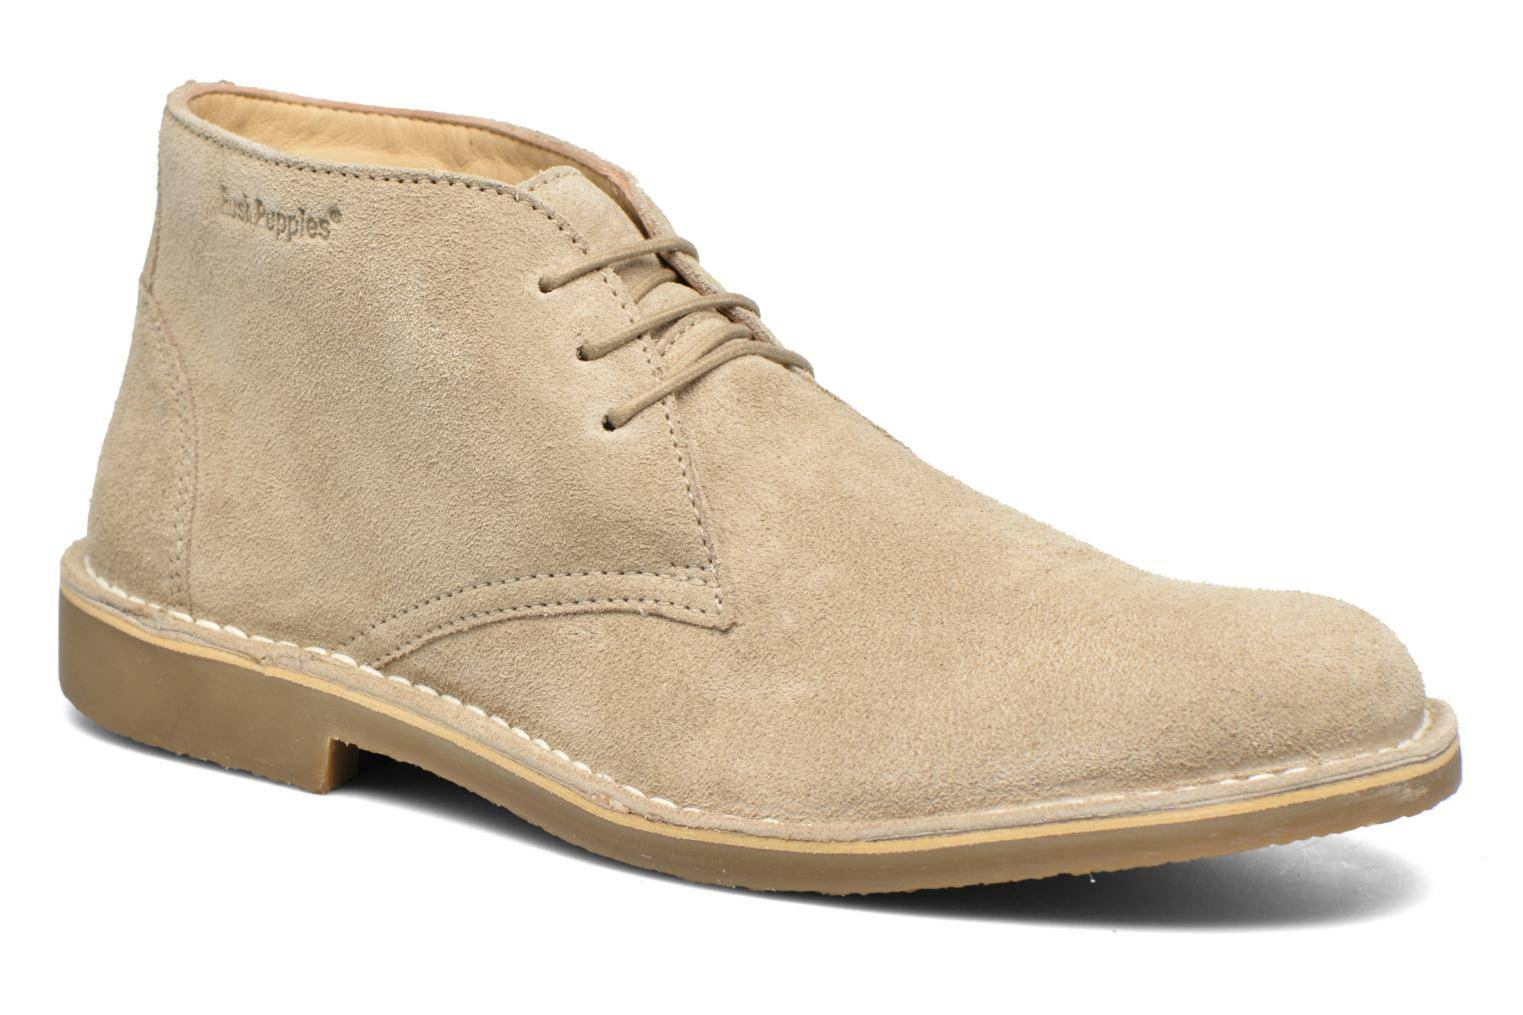 Hush Puppies - Lord by  - Nauhakengät Miehille  / Beige